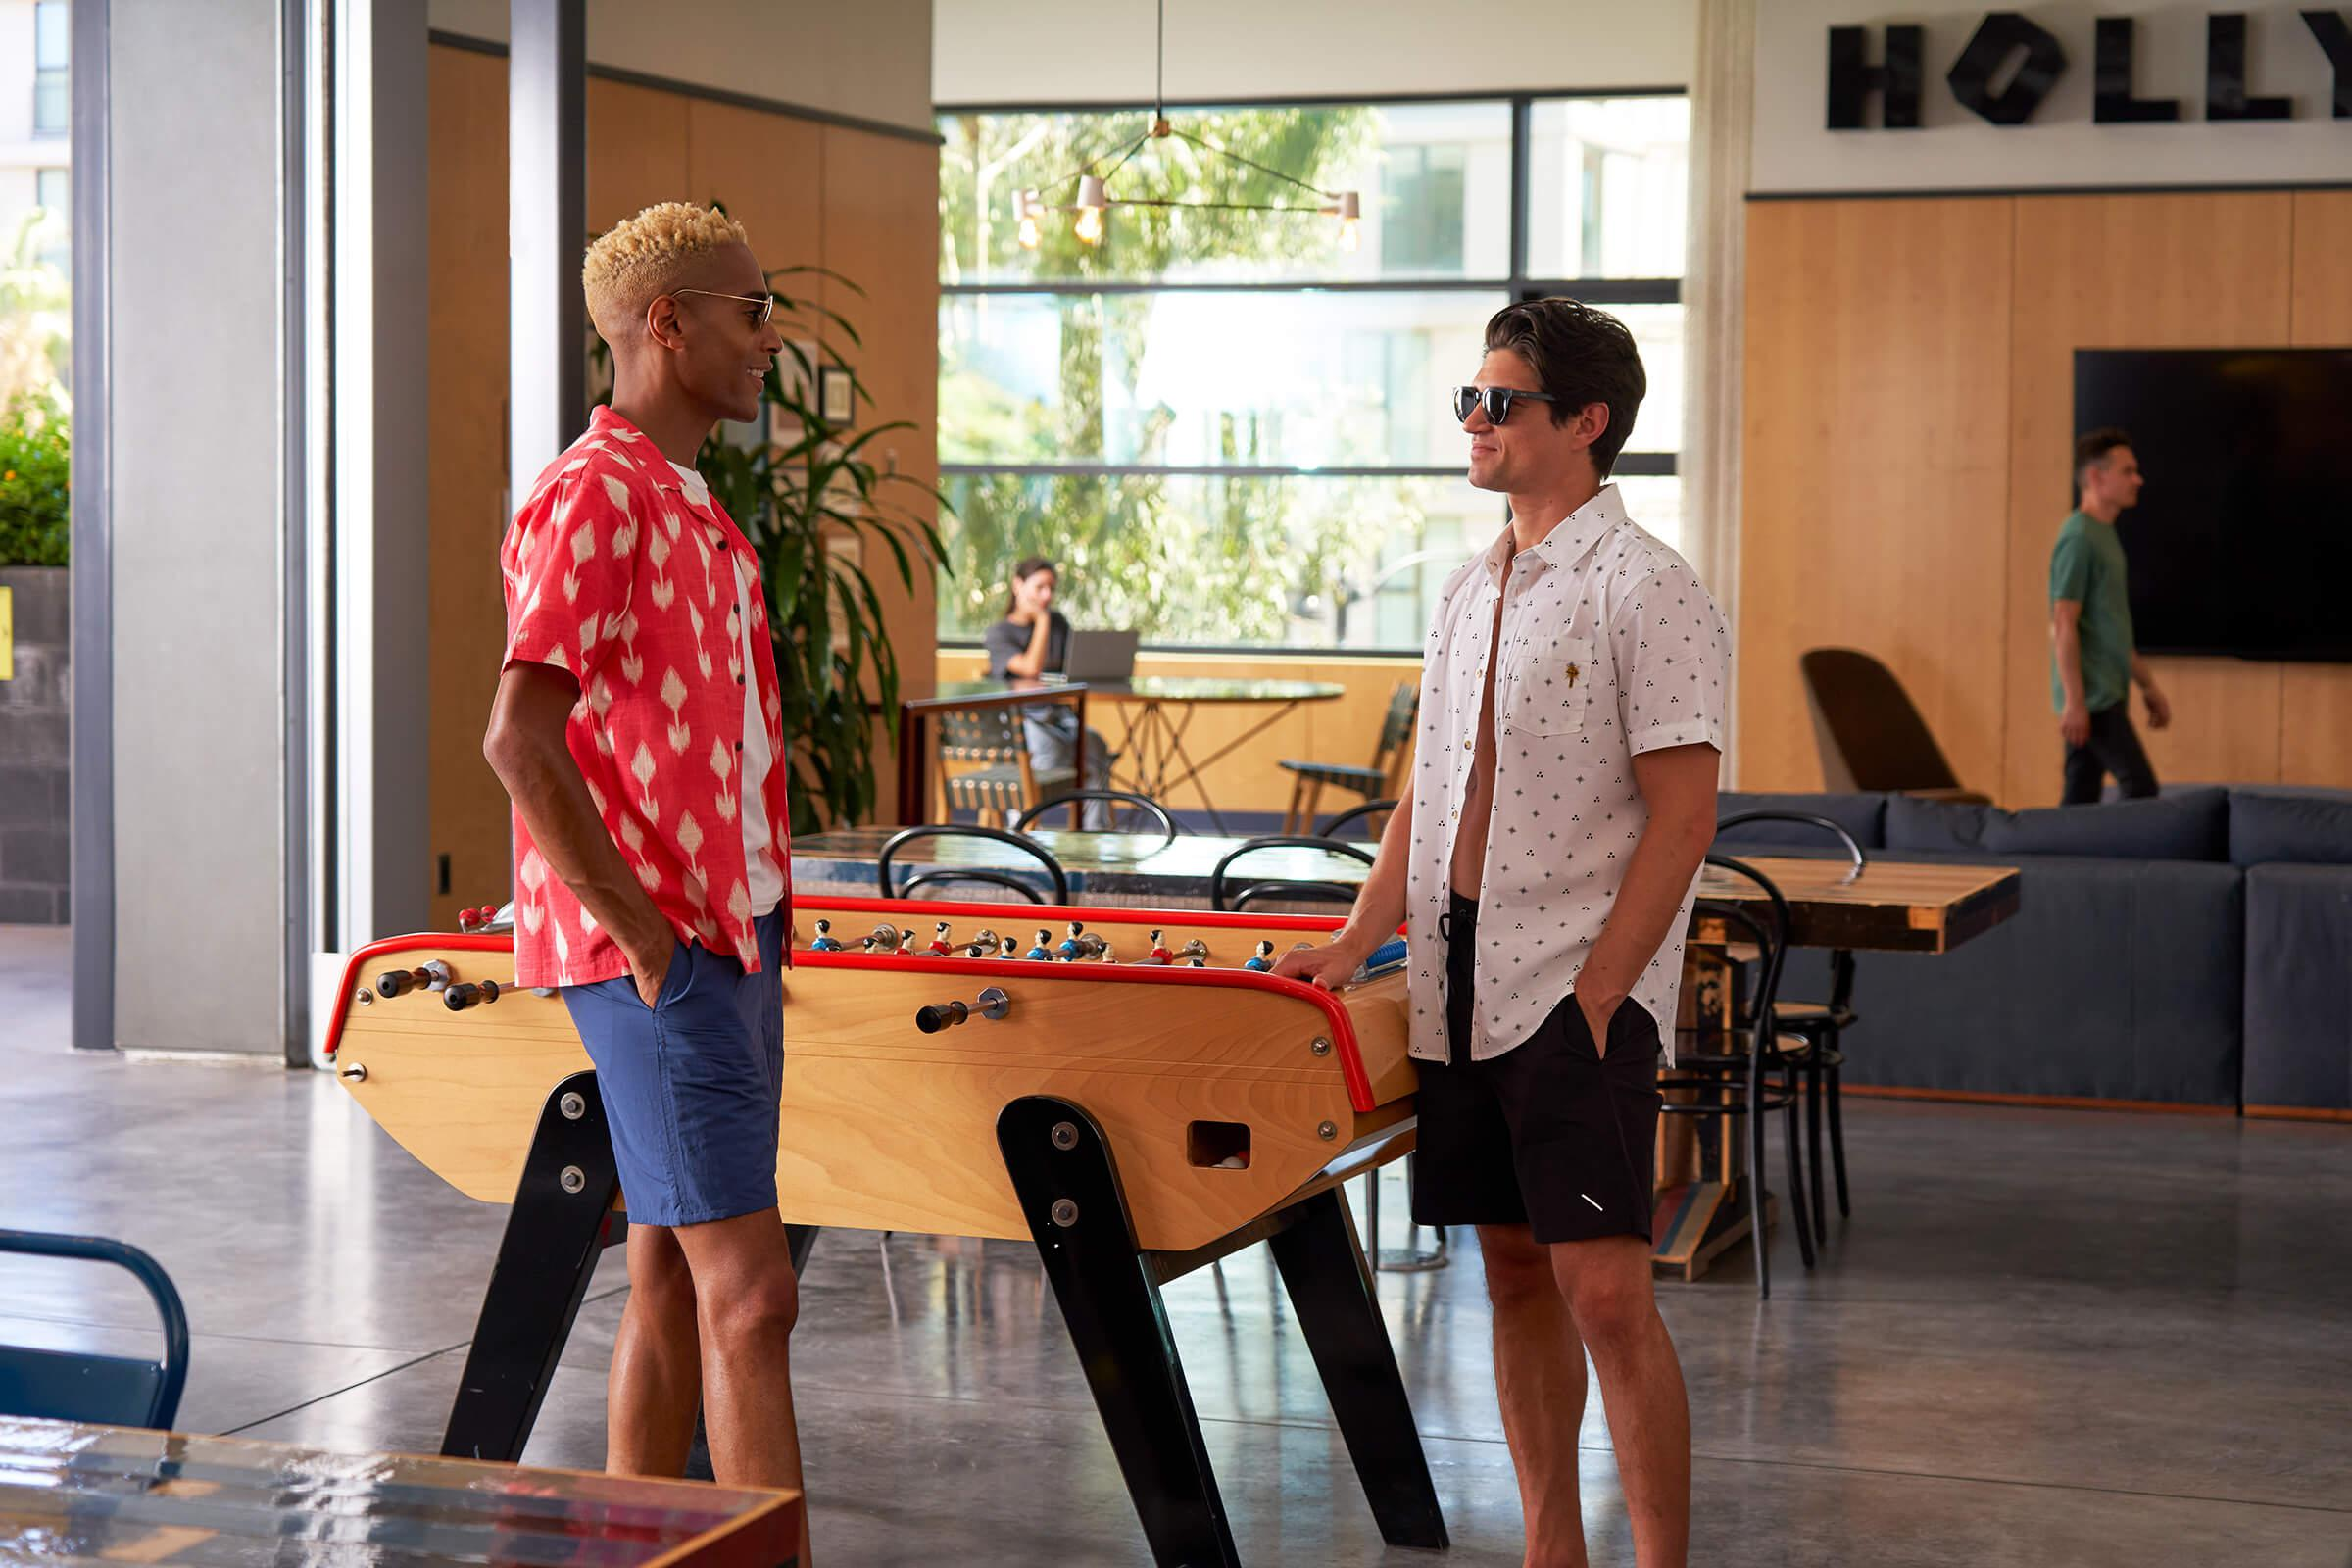 Two people standing in front of foosball table